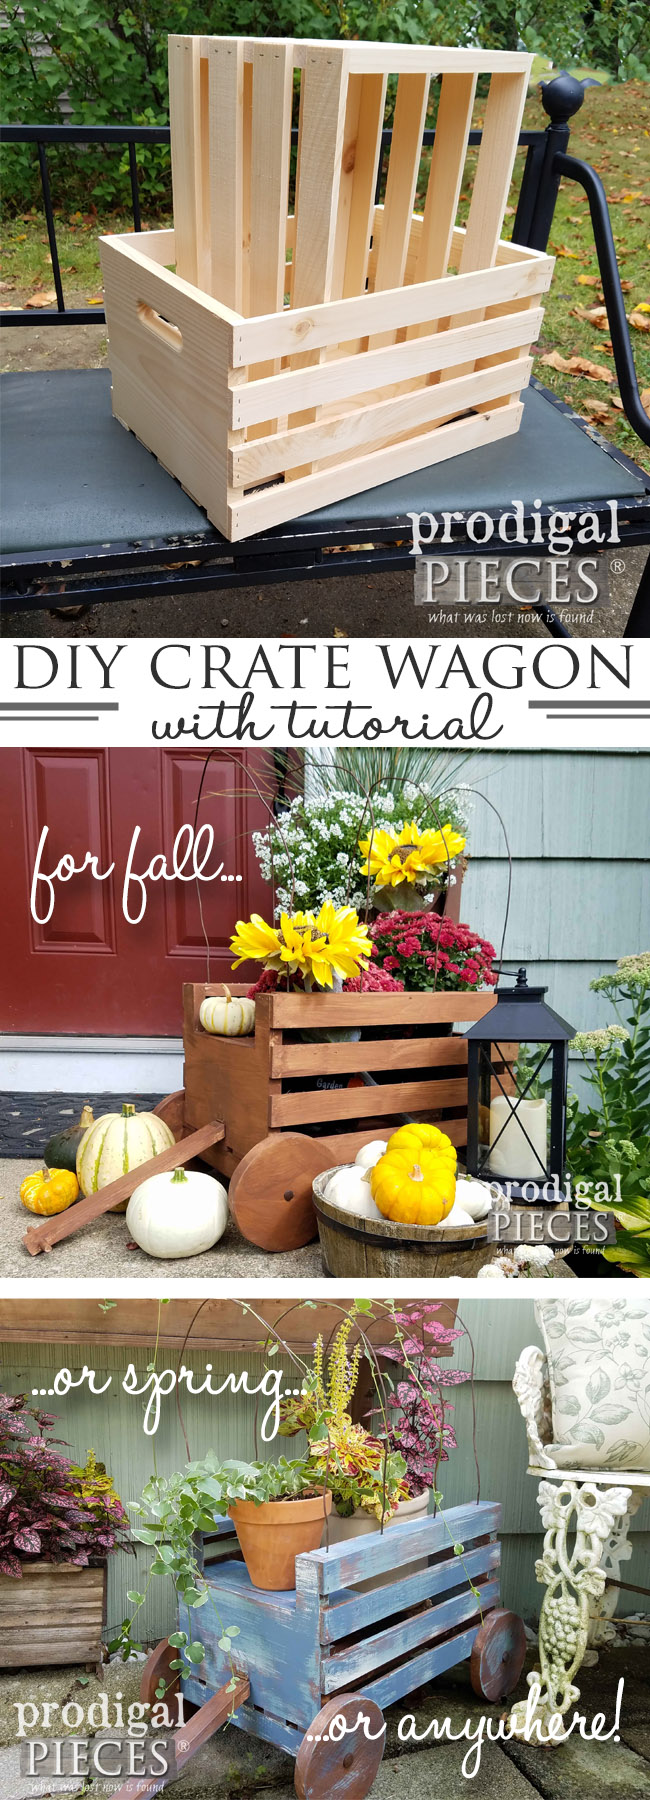 Build a Sweet DIY Crate Wagon with this tutorial by Prodigal Pieces. Use it outdoor, indoor, Christmas, photo prop, planter...you get the idea! Tutorial here at prodigalpieces.com